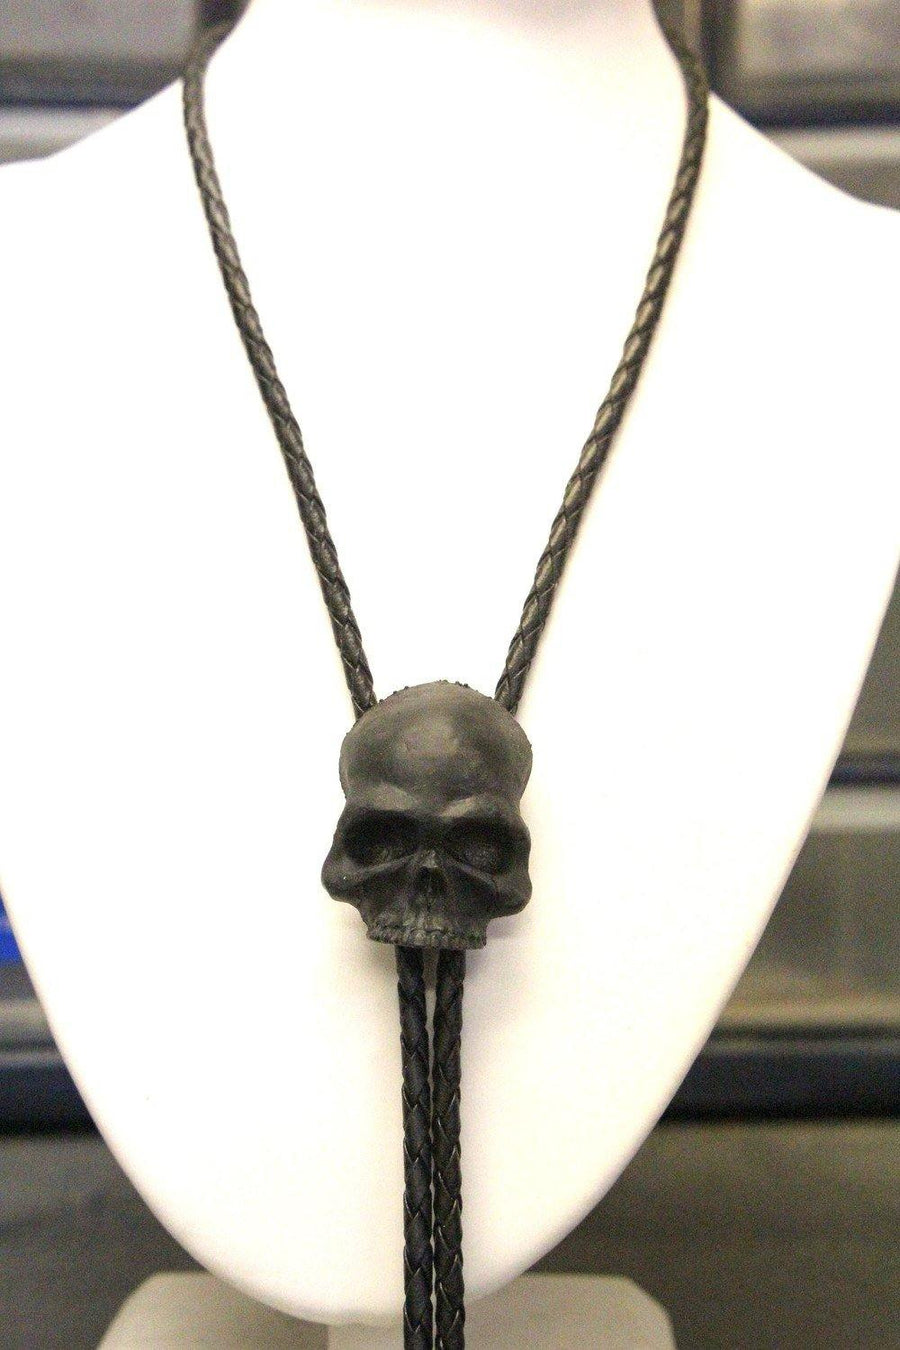 Black Skull Bolo Tie - Solid Onyx Resin and Braided Chord - Western Unisex Suit Accessory - Cowboy Goth - Moon Raven Designs